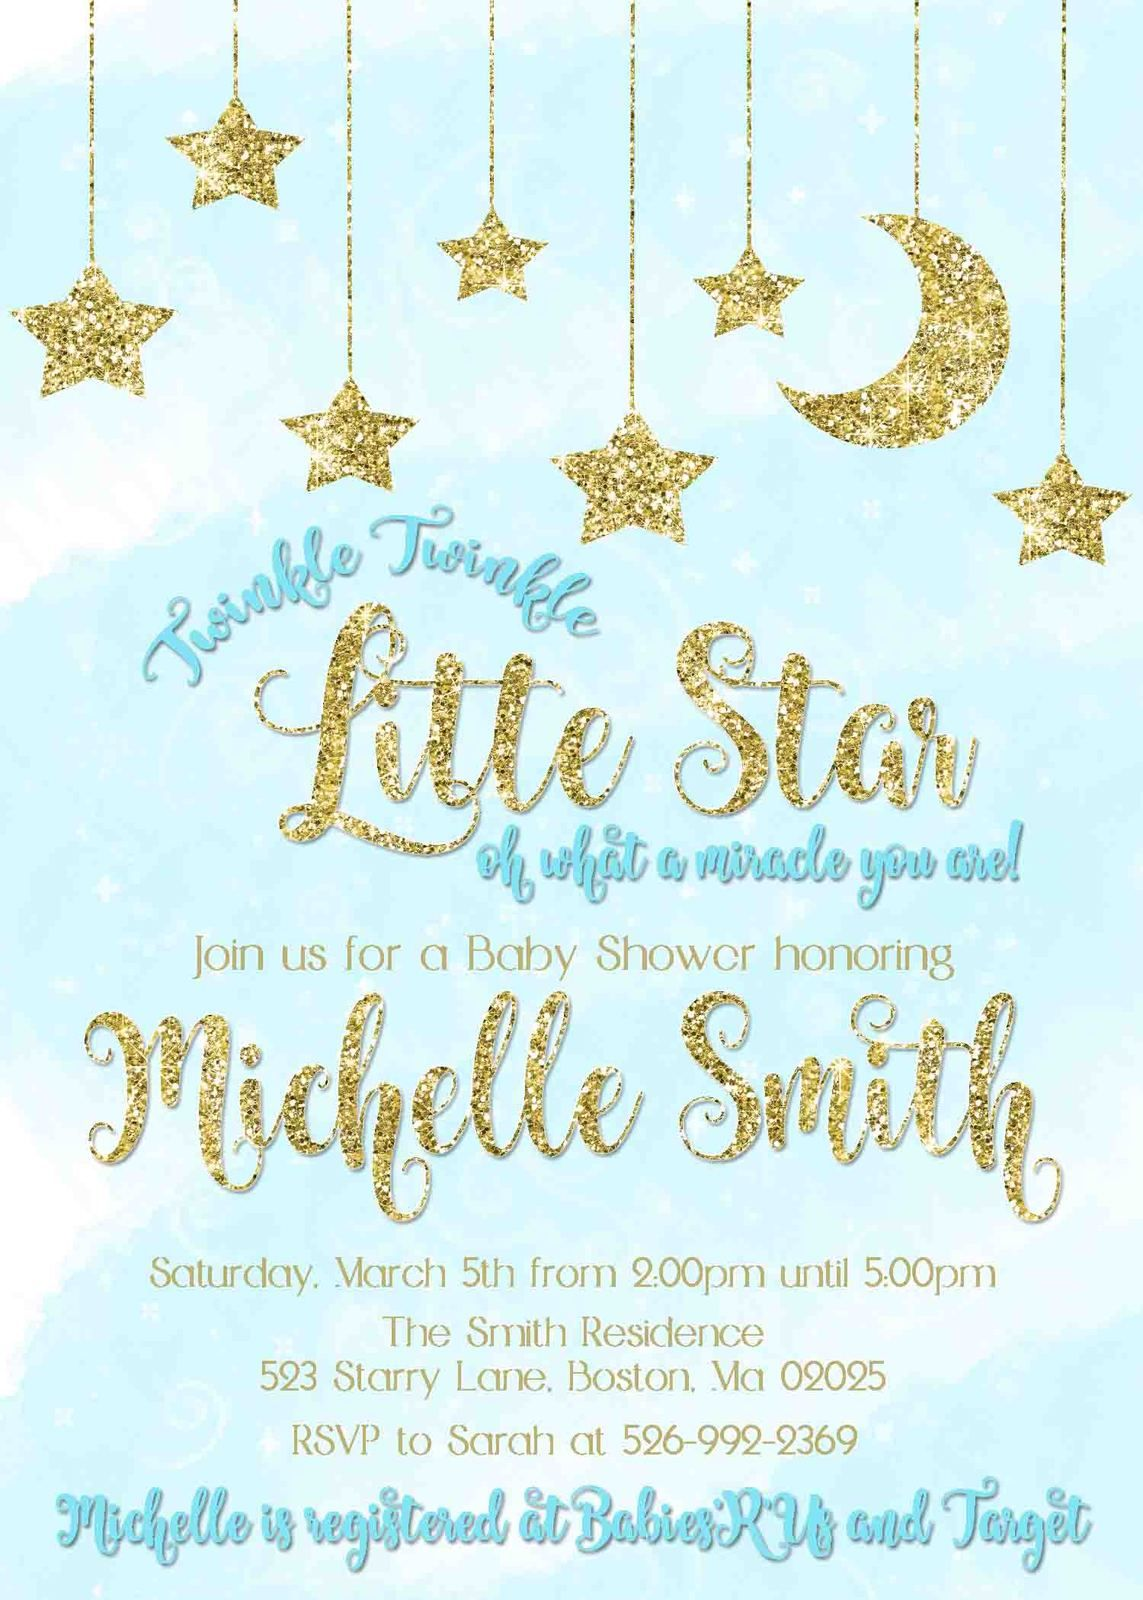 Twinkle Twinkle Little Star Baby Shower Invitation Wording : twinkle, little, shower, invitation, wording, Twinkle, Little, Shower, Invitation, Invitations,, Glitter, Shower,, Invitations